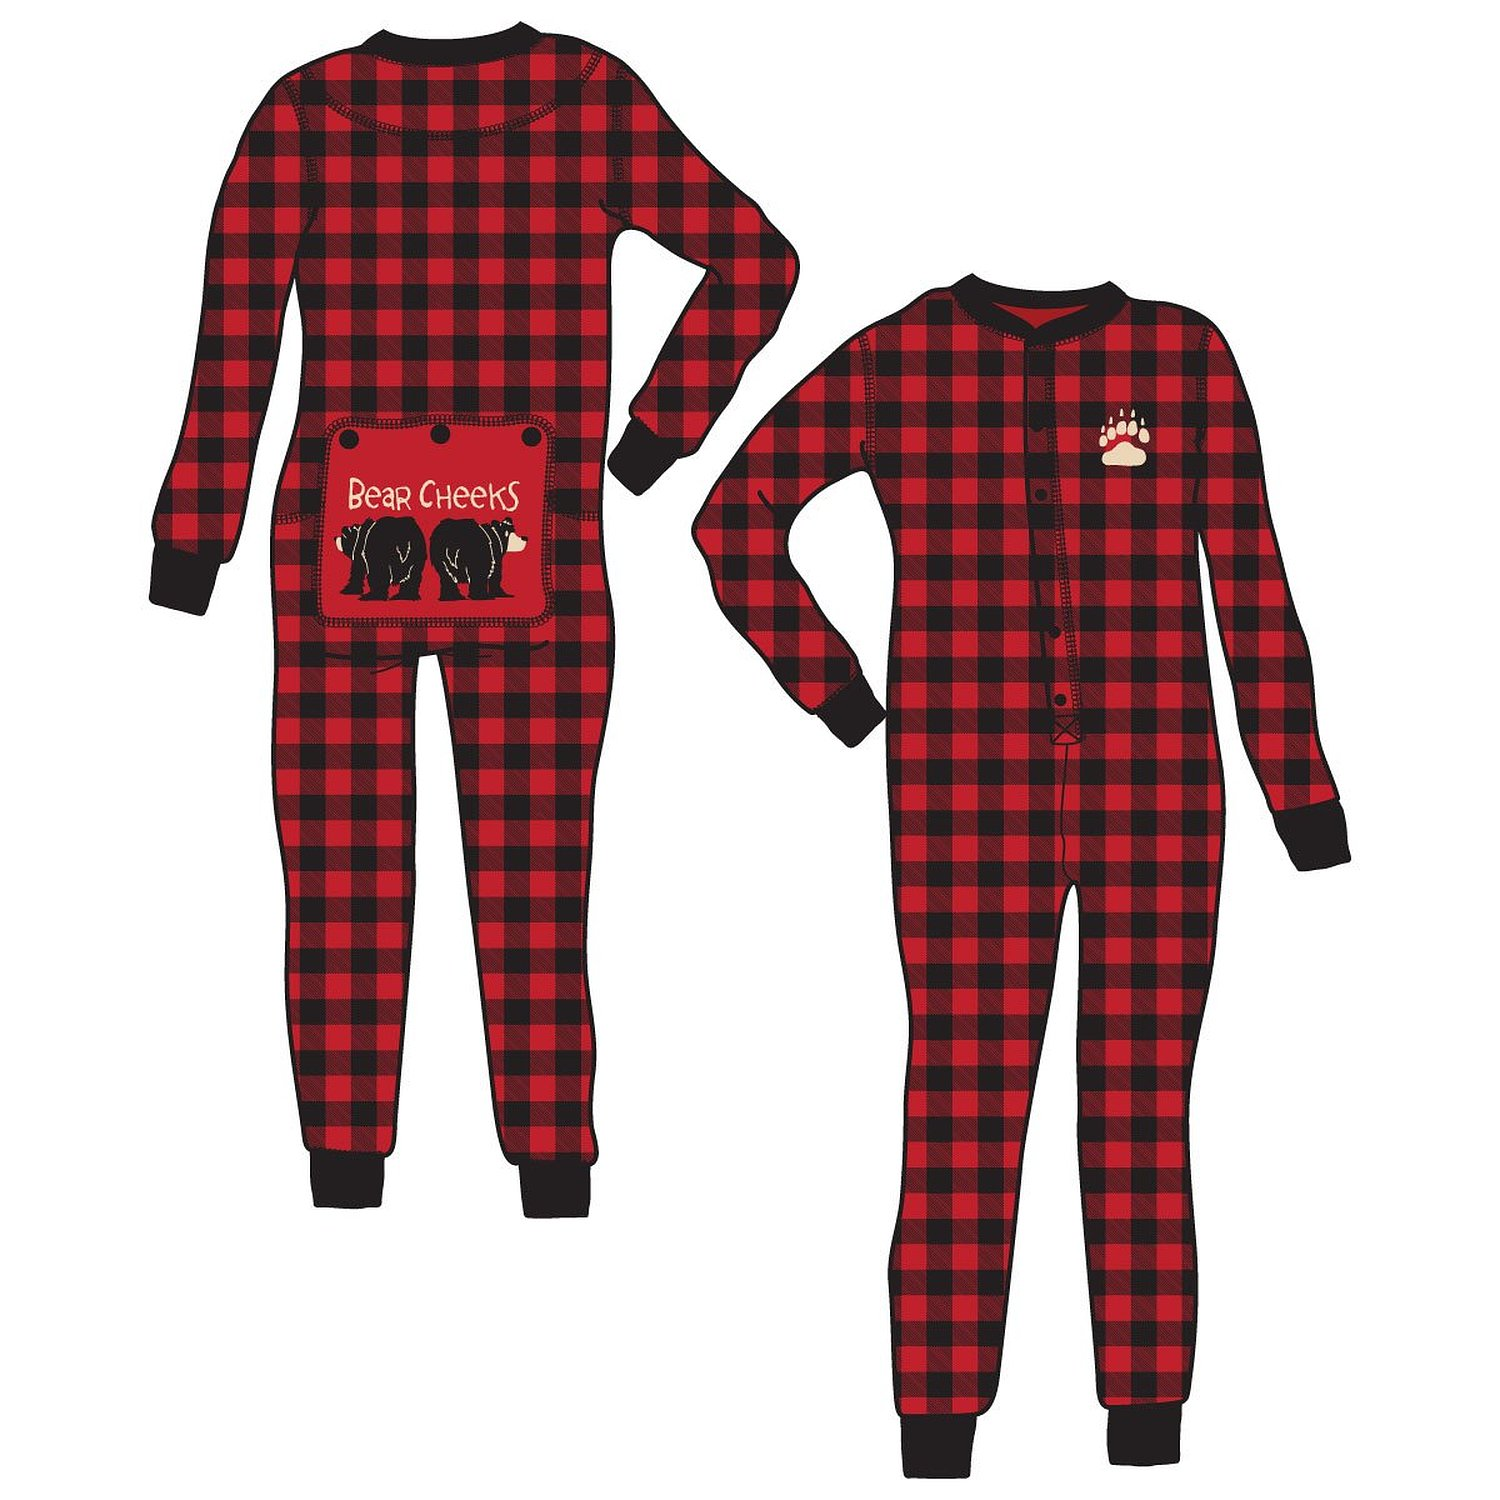 Amazon.com: Bear Cheeks Red & Black Plaid FlapJacks Lazy One Sizes in Adults, Childs, Infant: Clothing